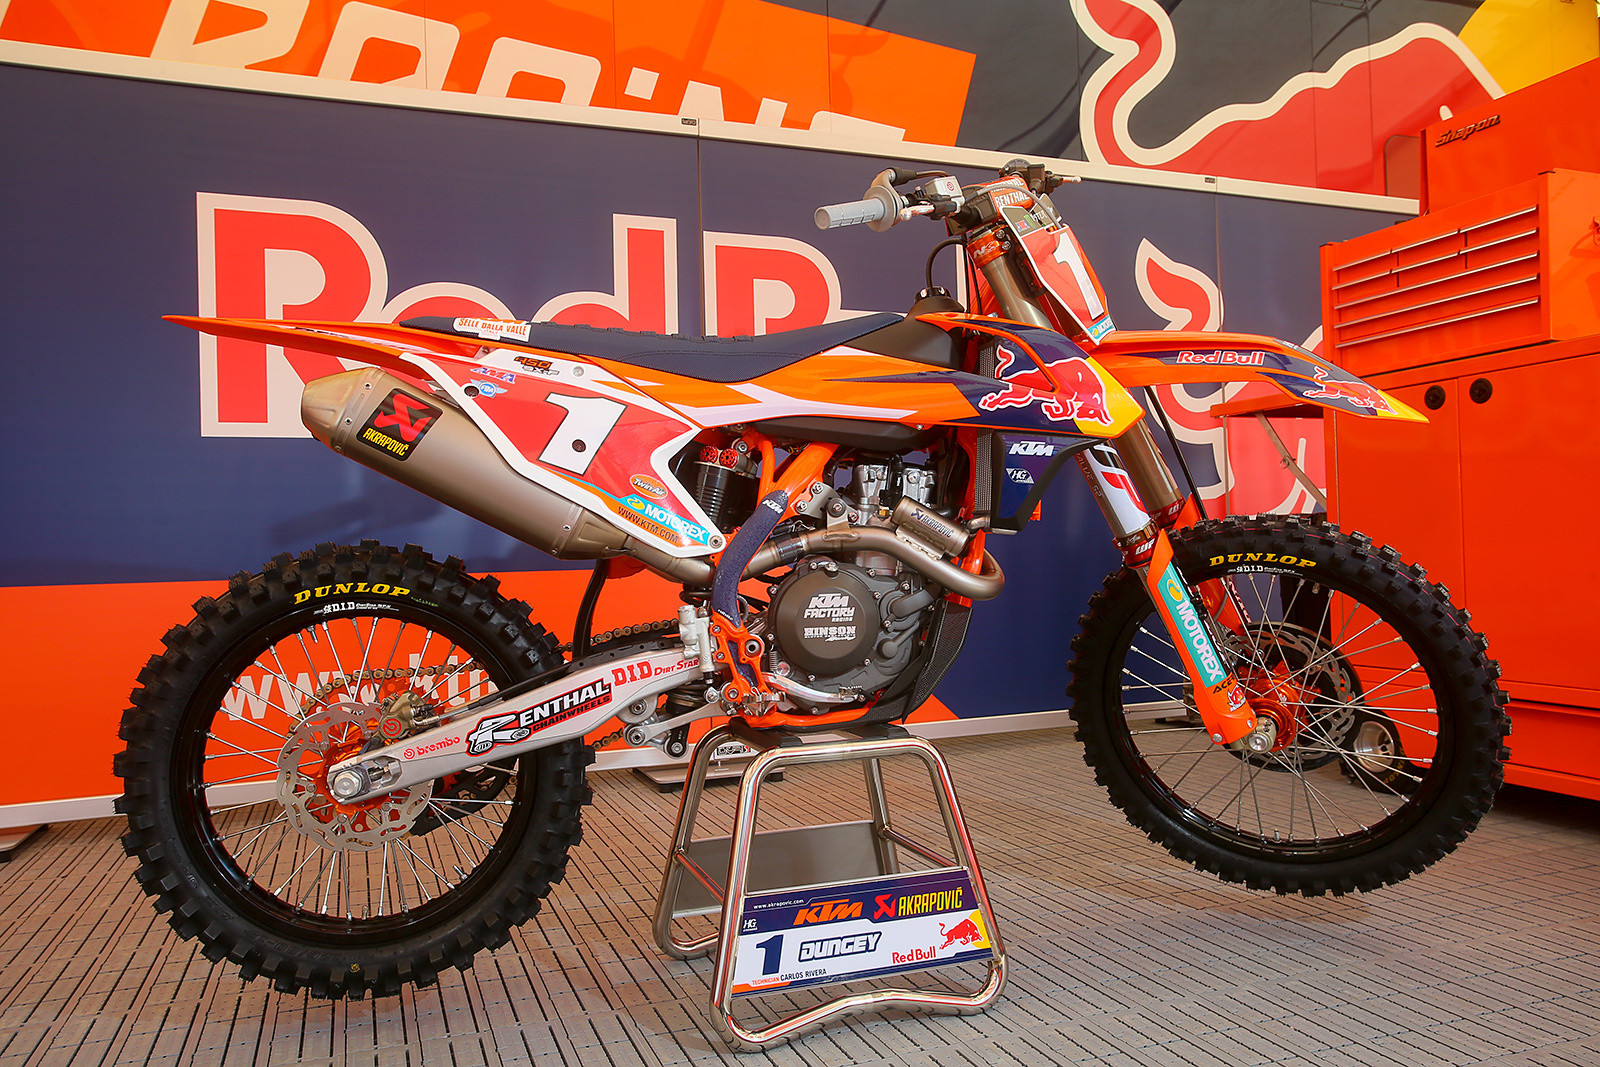 Ryan Dungey - Bikes of Supercross 2017 - Motocross Pictures - Vital MX